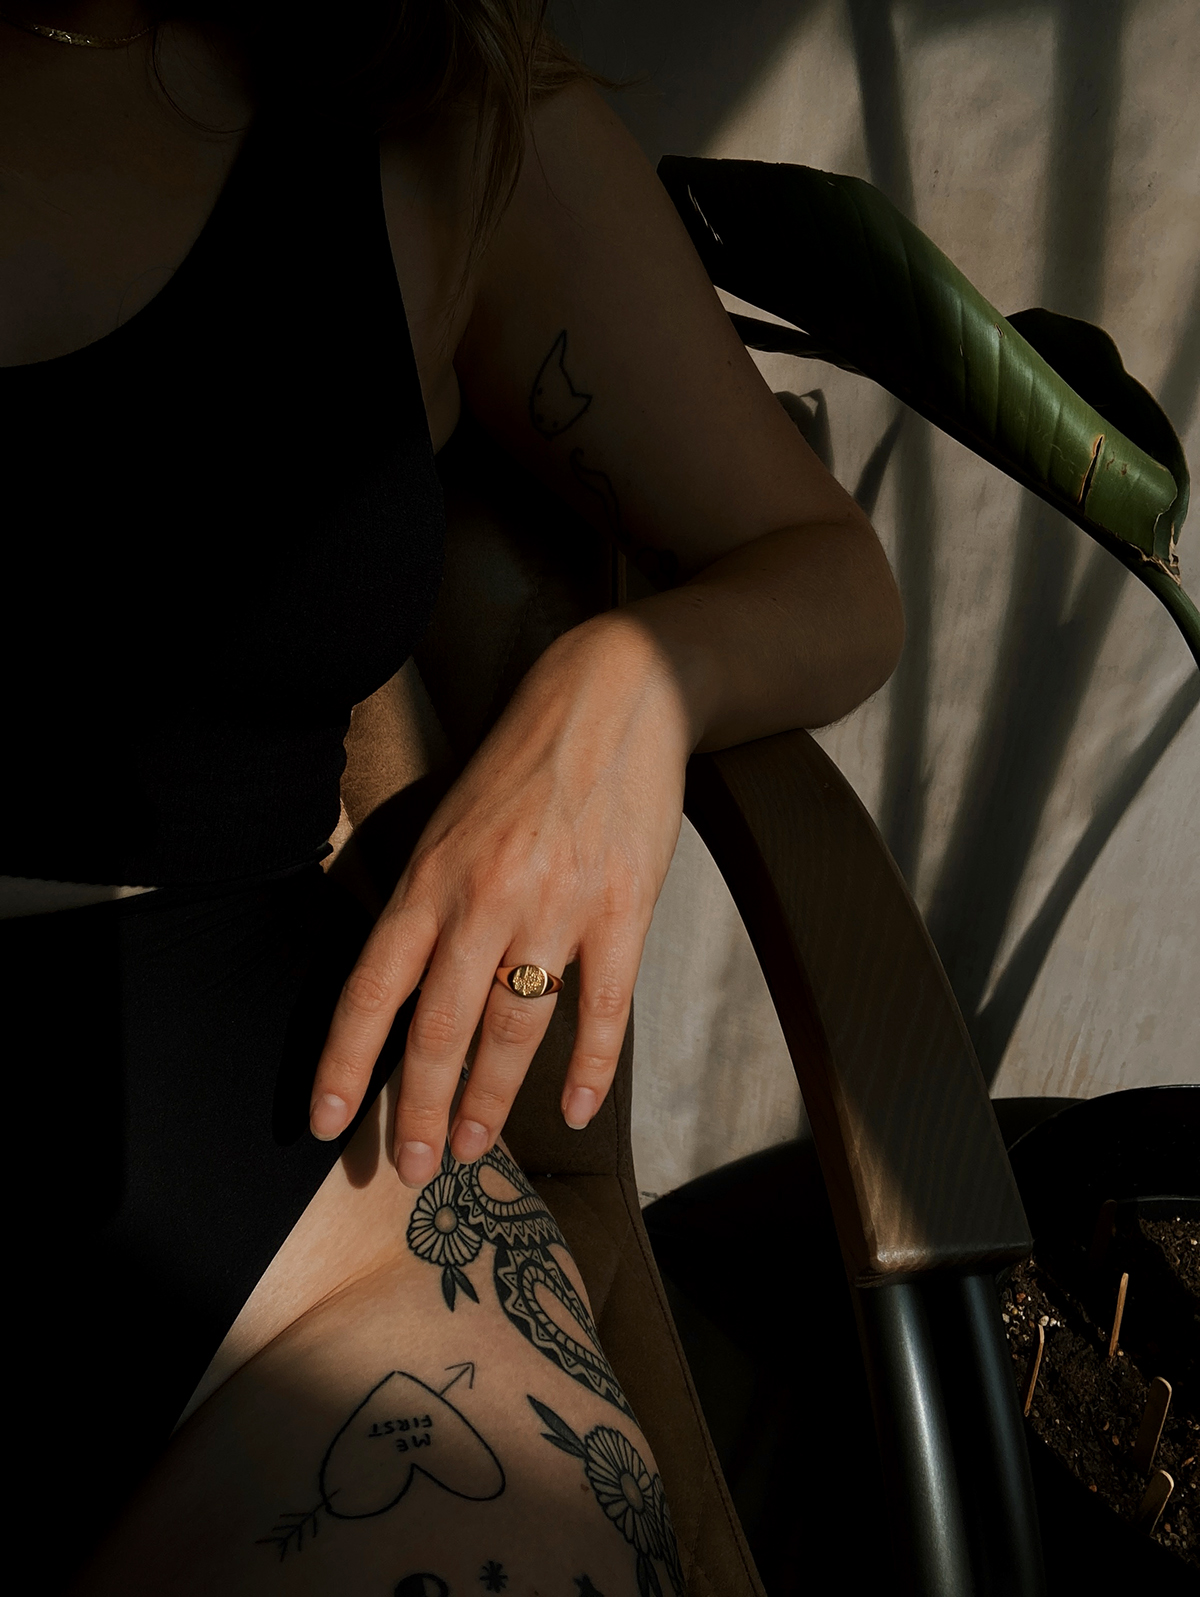 Cropped shot of Lyzi sitting on a vintage chair in dramatic shade and sunlight shining on tattoos and Daisy London forget me not signet ring.